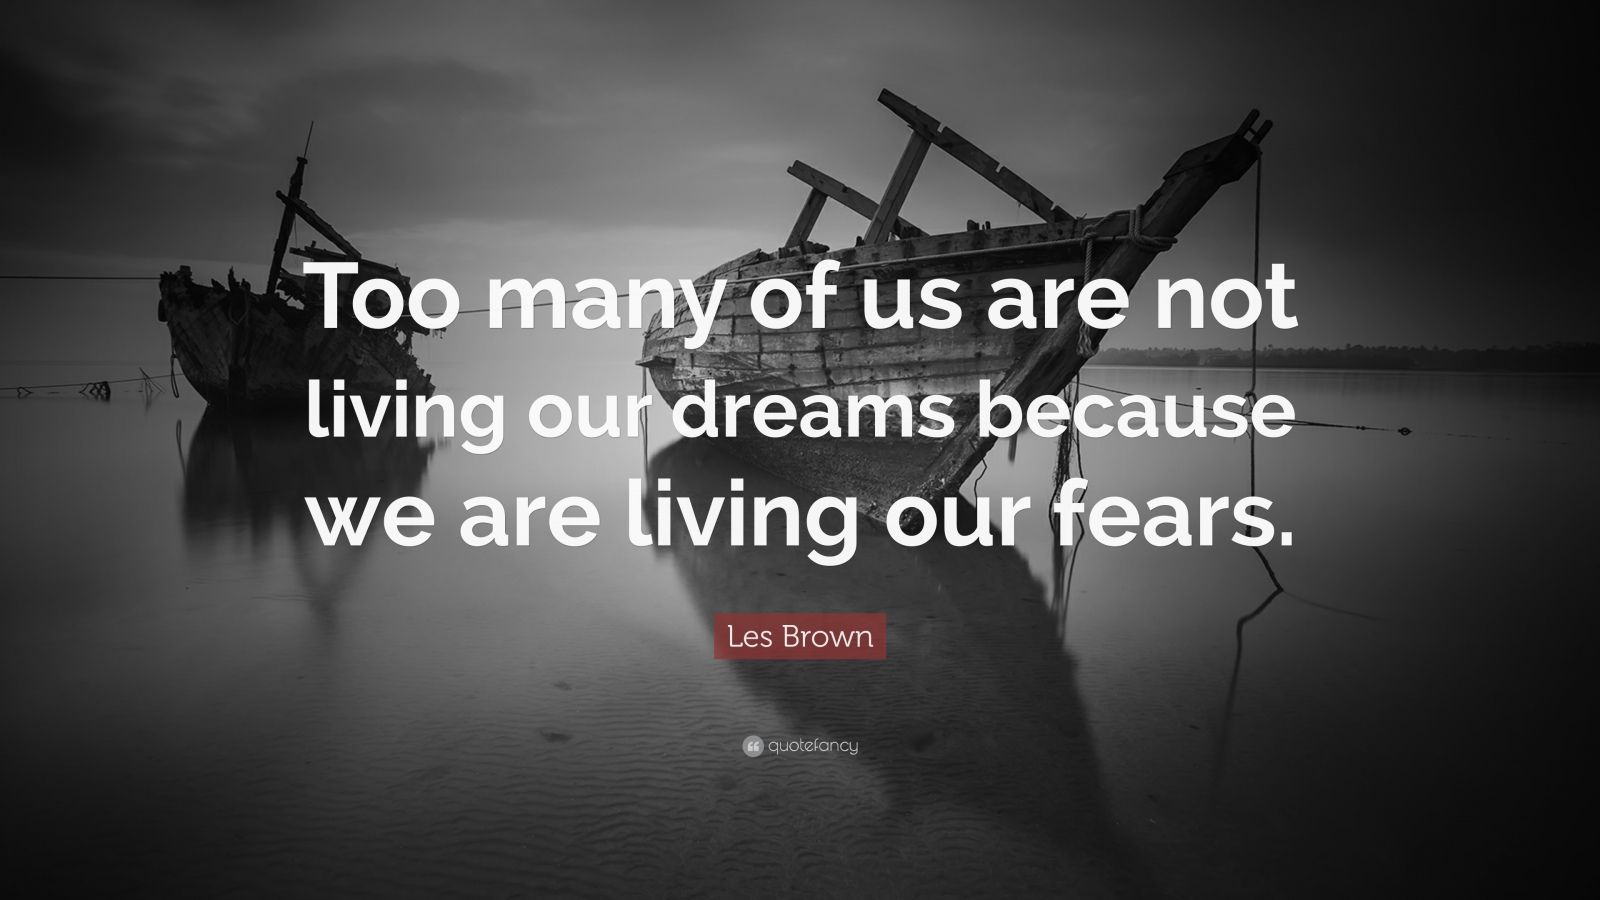 Inspiring Quotes With Wallpapers Les Brown Quote Too Many Of Us Are Not Living Our Dreams